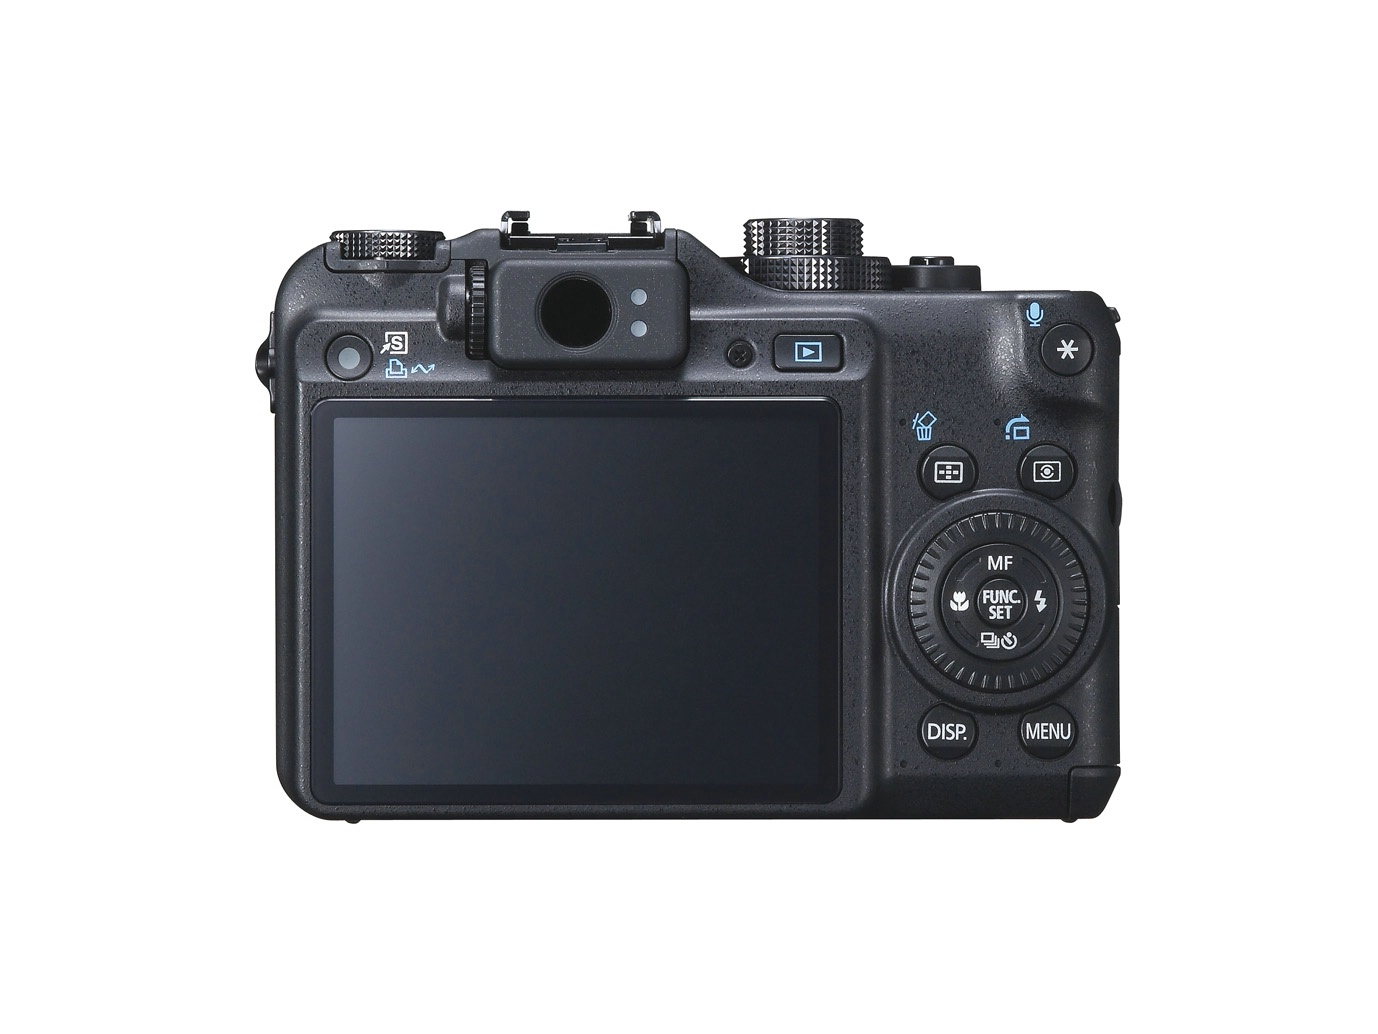 Canon Powershot G10 - Rear Actual Size Image